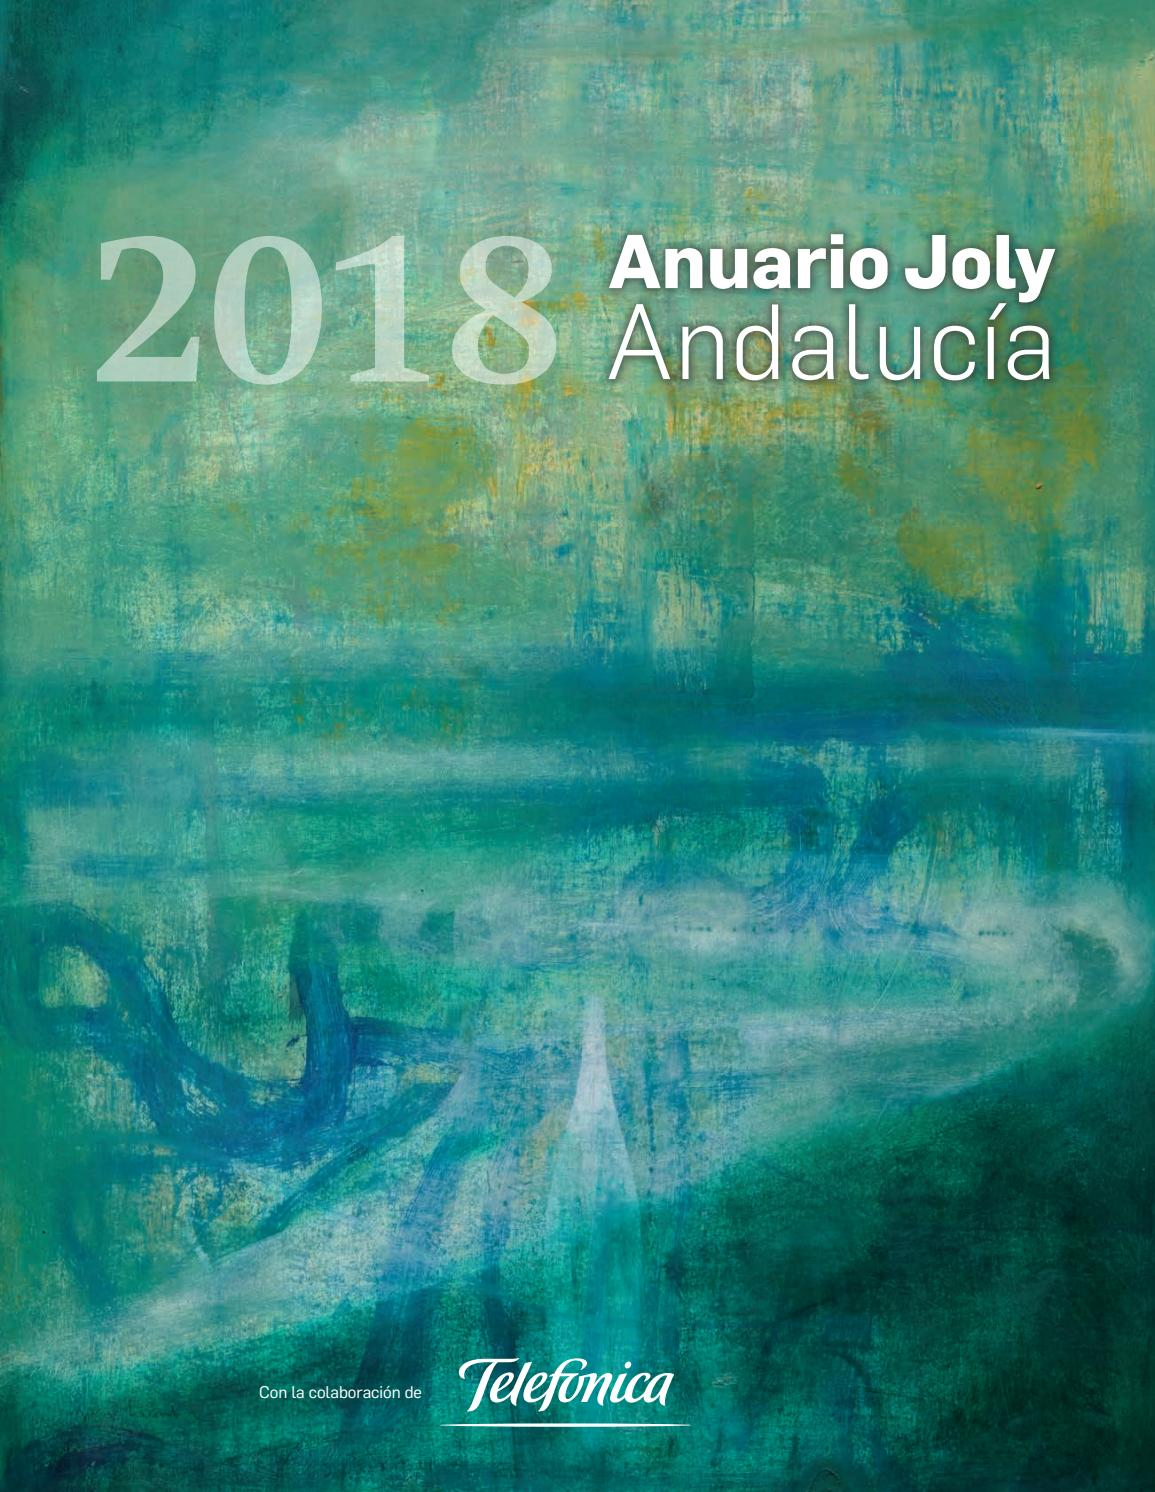 Joly By Anuario Joly digital Issuu 2018 Andalucia fxCqwPSF